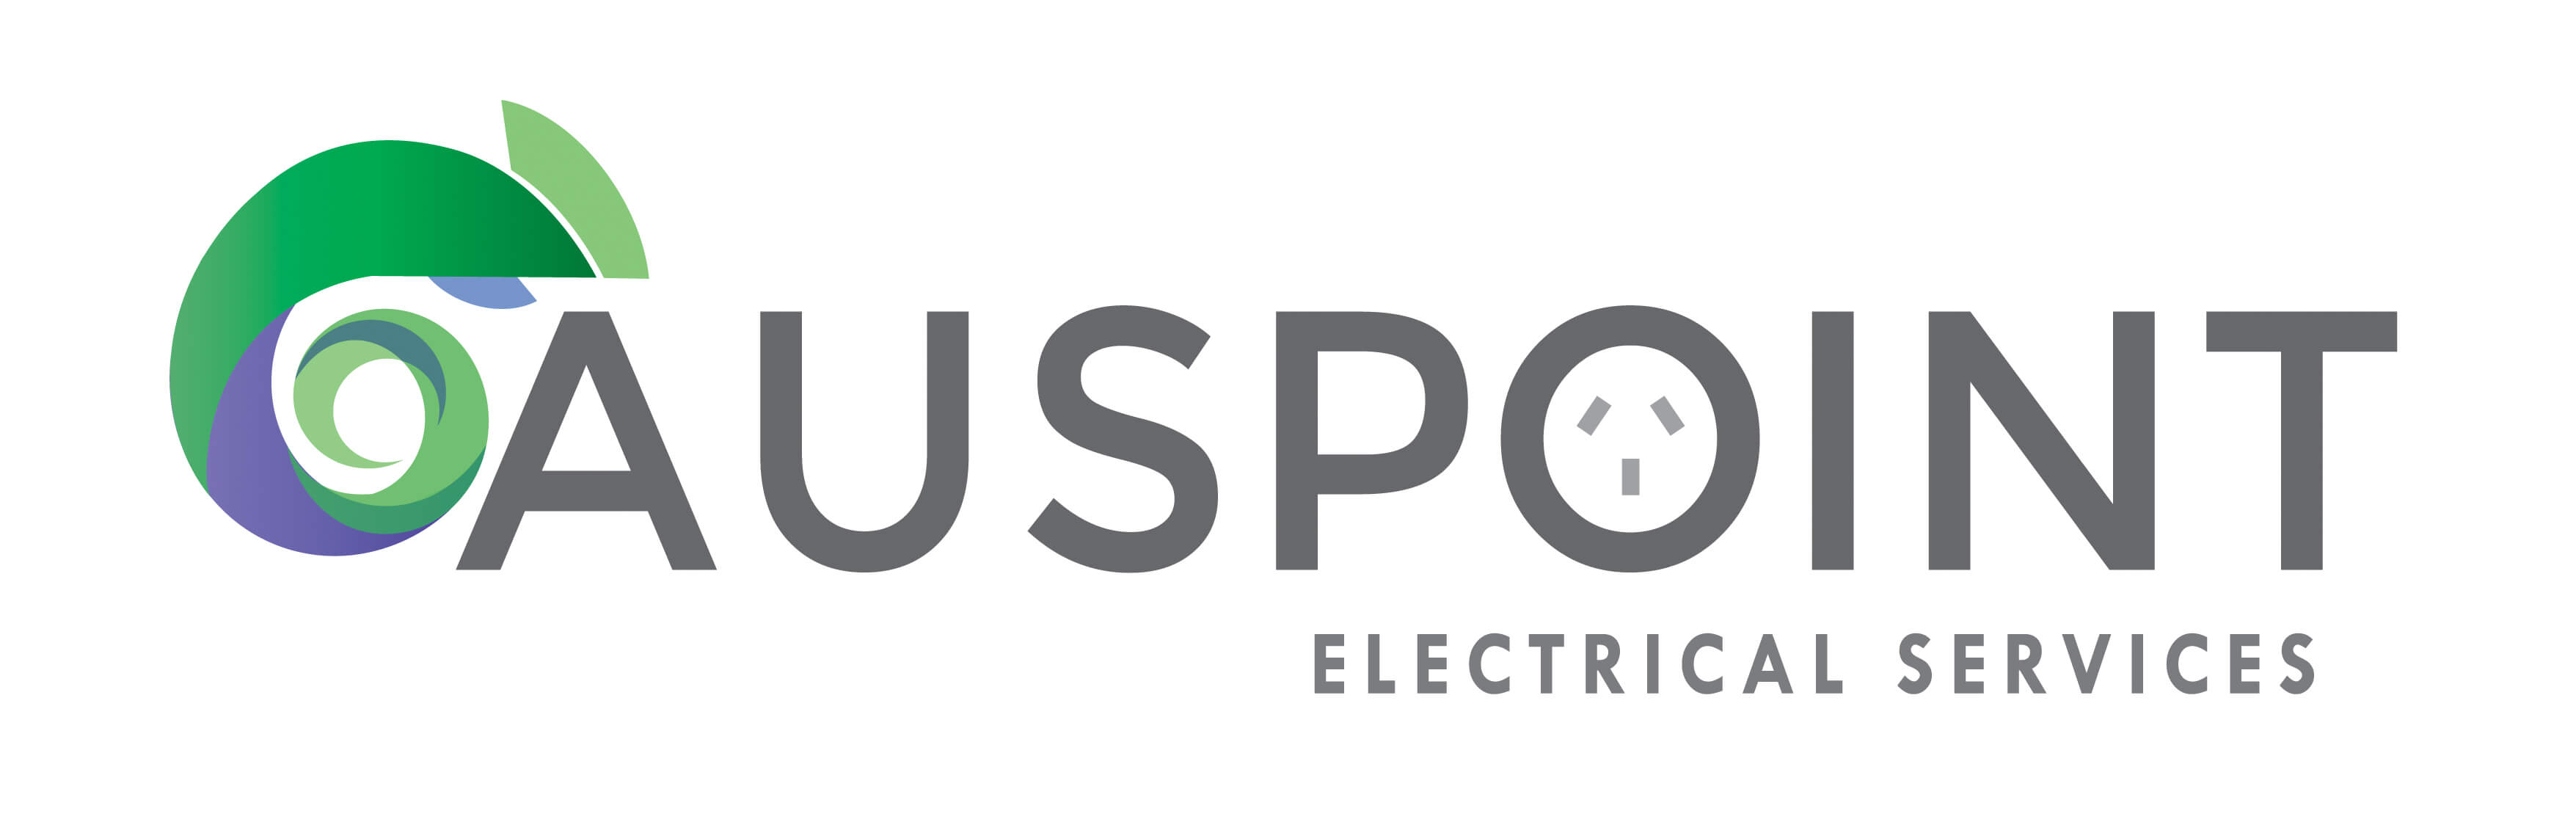 Auspoint Electrical Services Pty Ltd